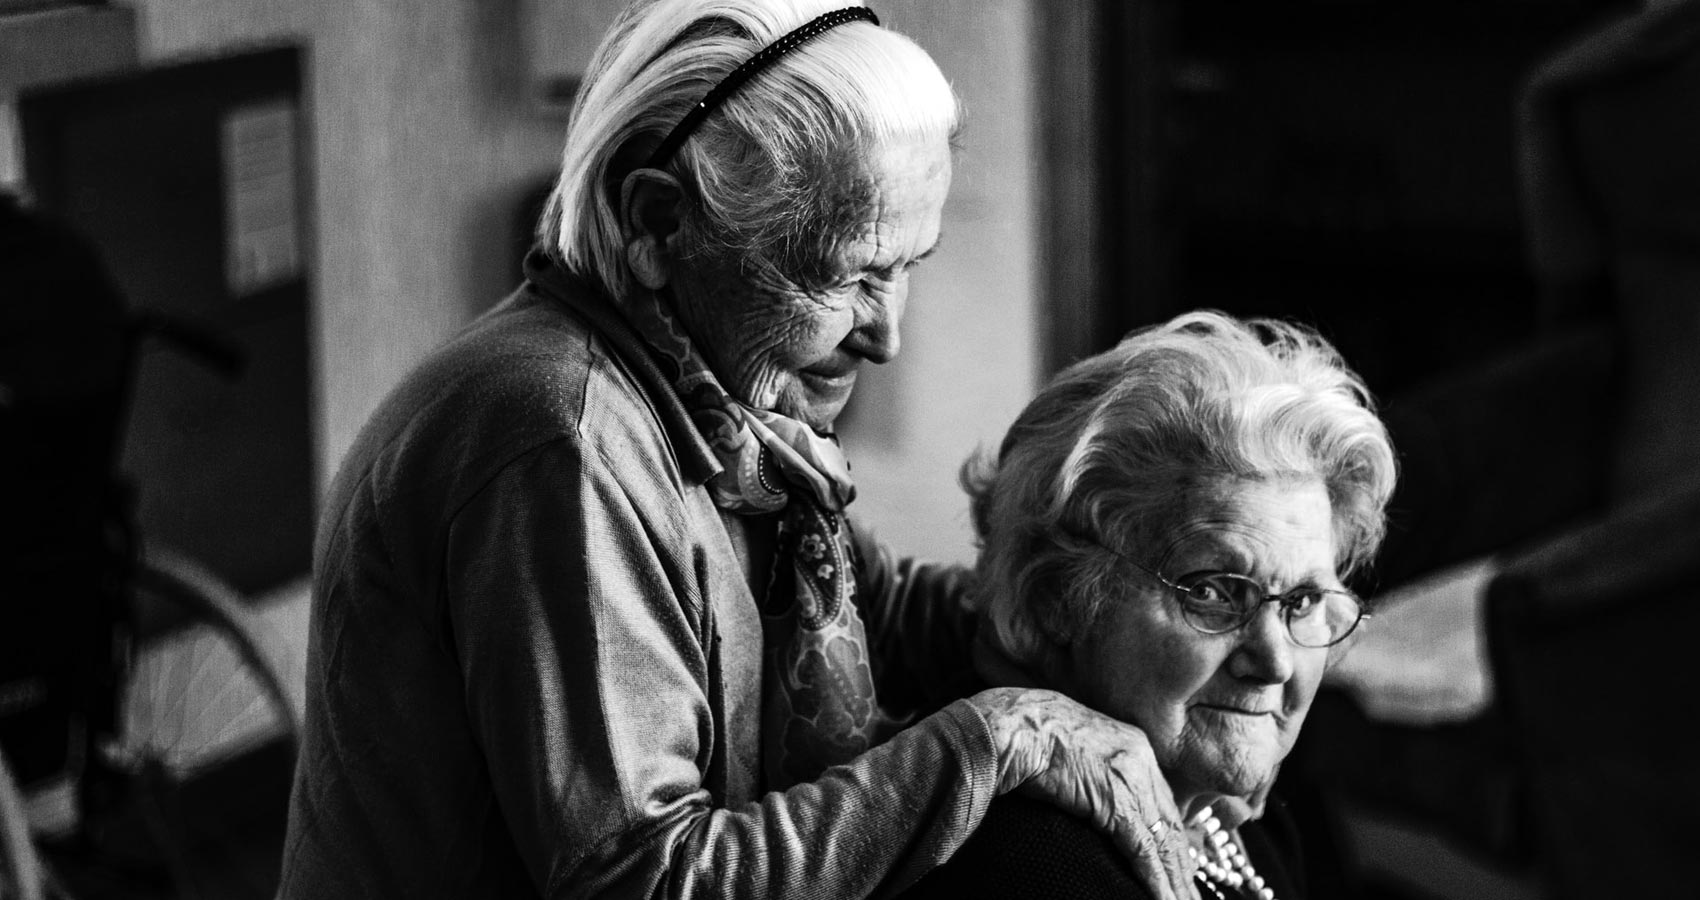 Grandmother's Dance, a poem by Dennis Maulsby at Spillwords.com